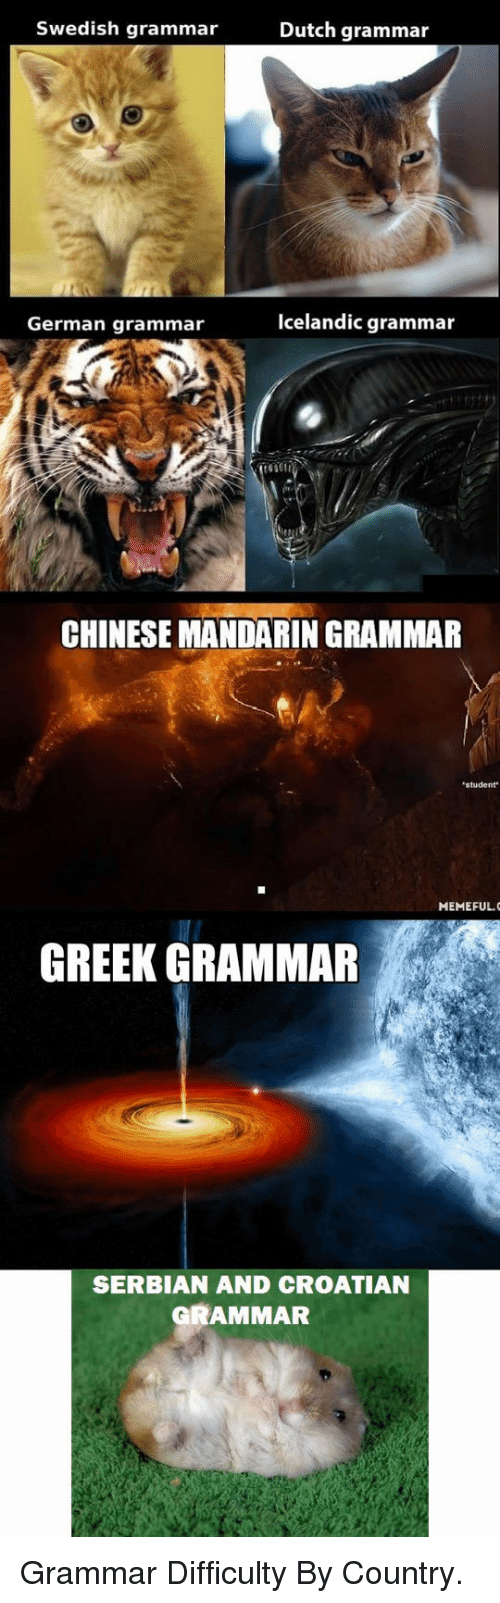 Chinese, Croatian, and Dutch Language: Swedish grammar  Dutch grammar  German grammar  Icelandic grammar  CHINESE MANDARIN GRAMMAR  student  MEMEFUL.  GREEK GRAMMAR  SERBIAN AND CROATIAN  GRAMMAR <p>Grammar Difficulty By Country.</p>